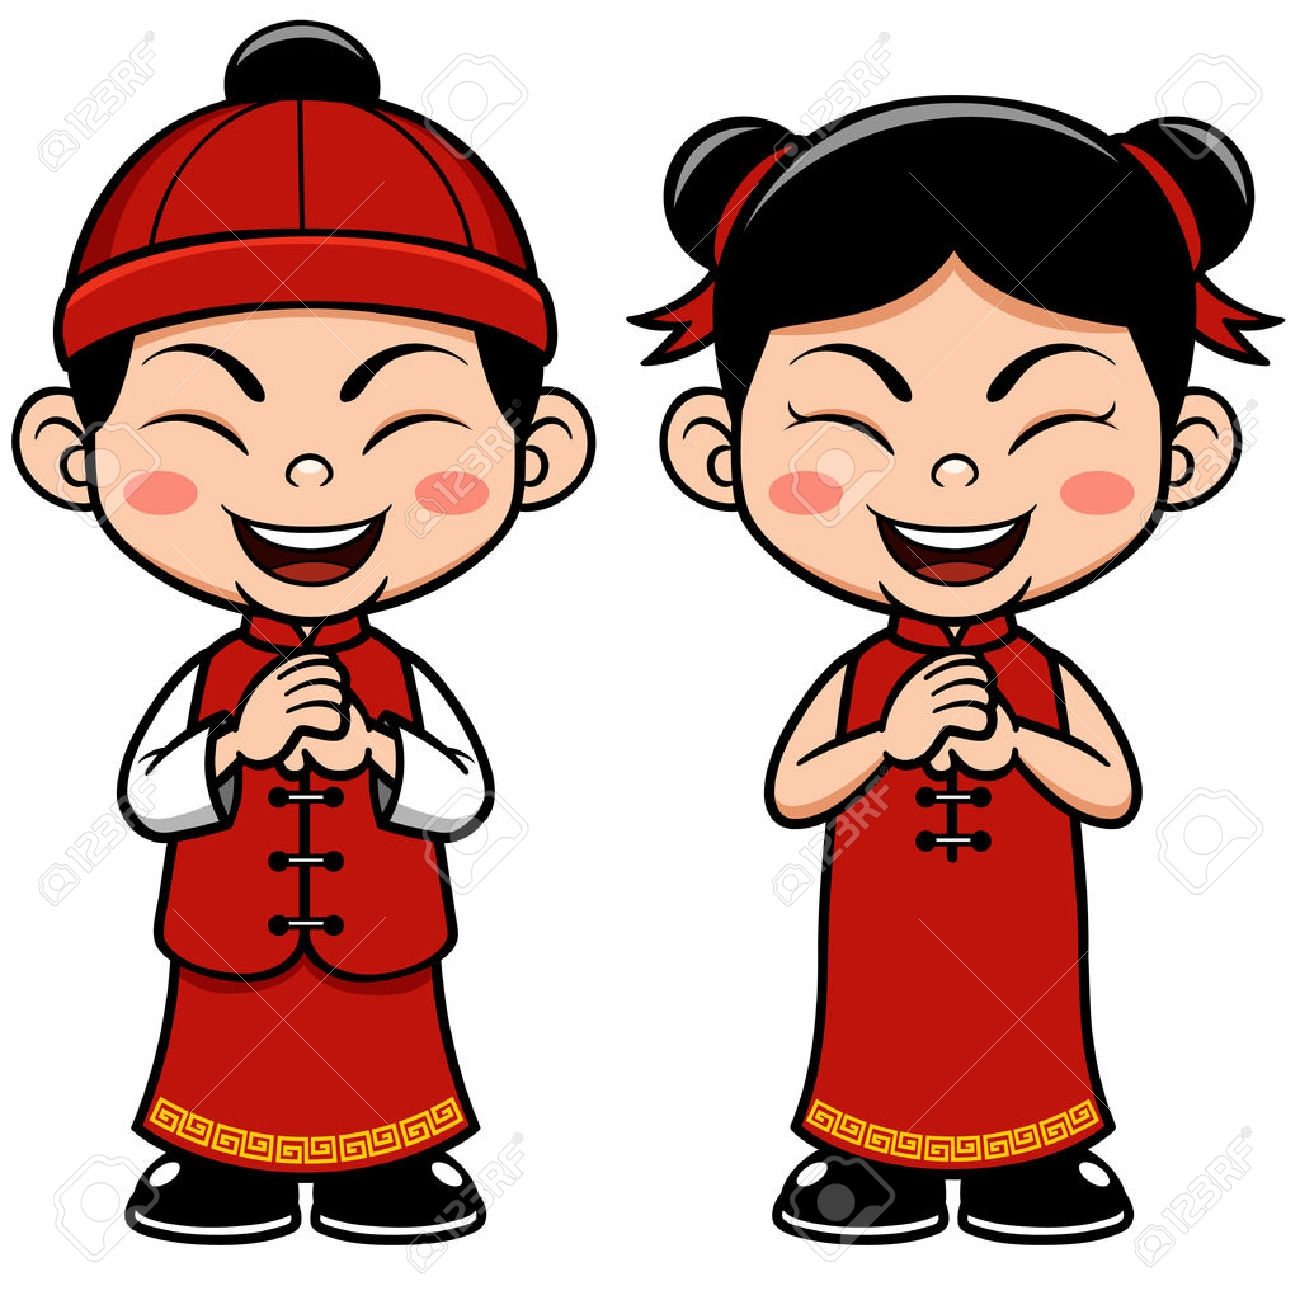 Asian clipart toddler. Asians chinese kid pencil